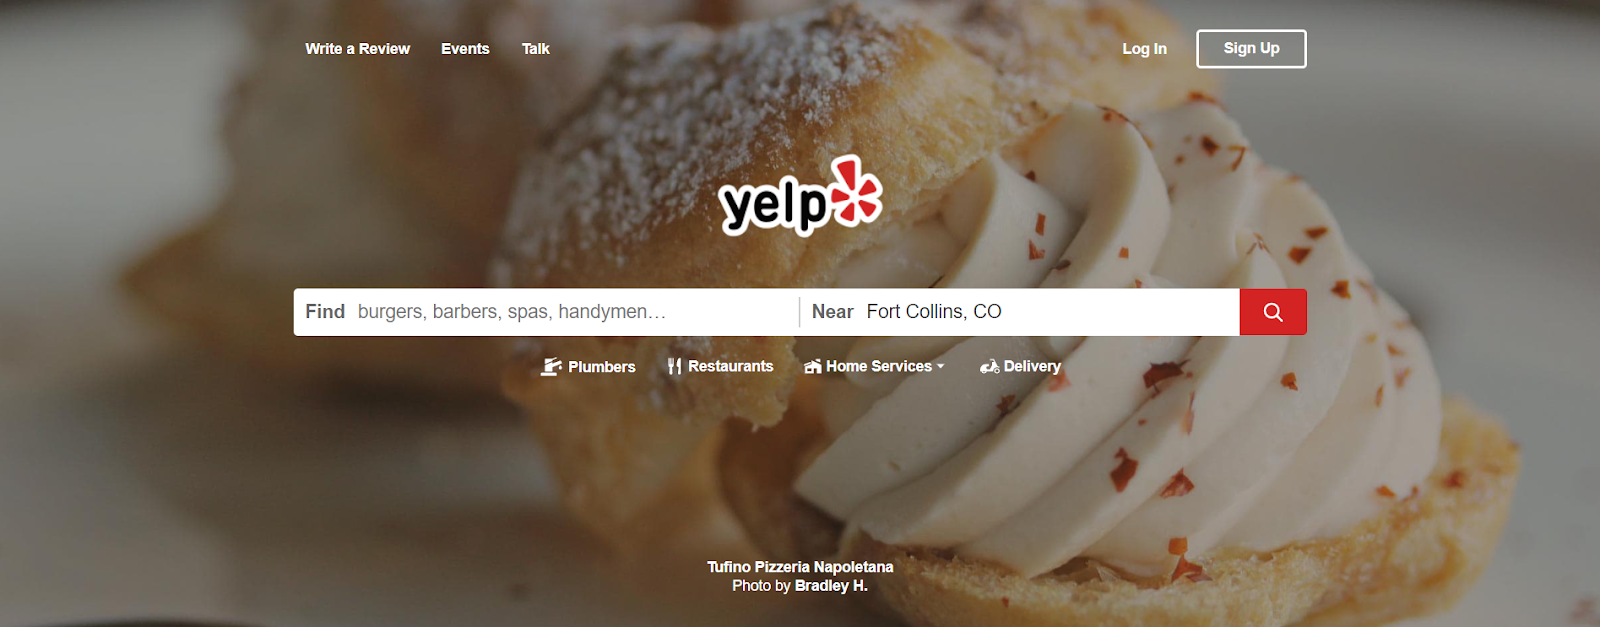 Yelp listing and review search page